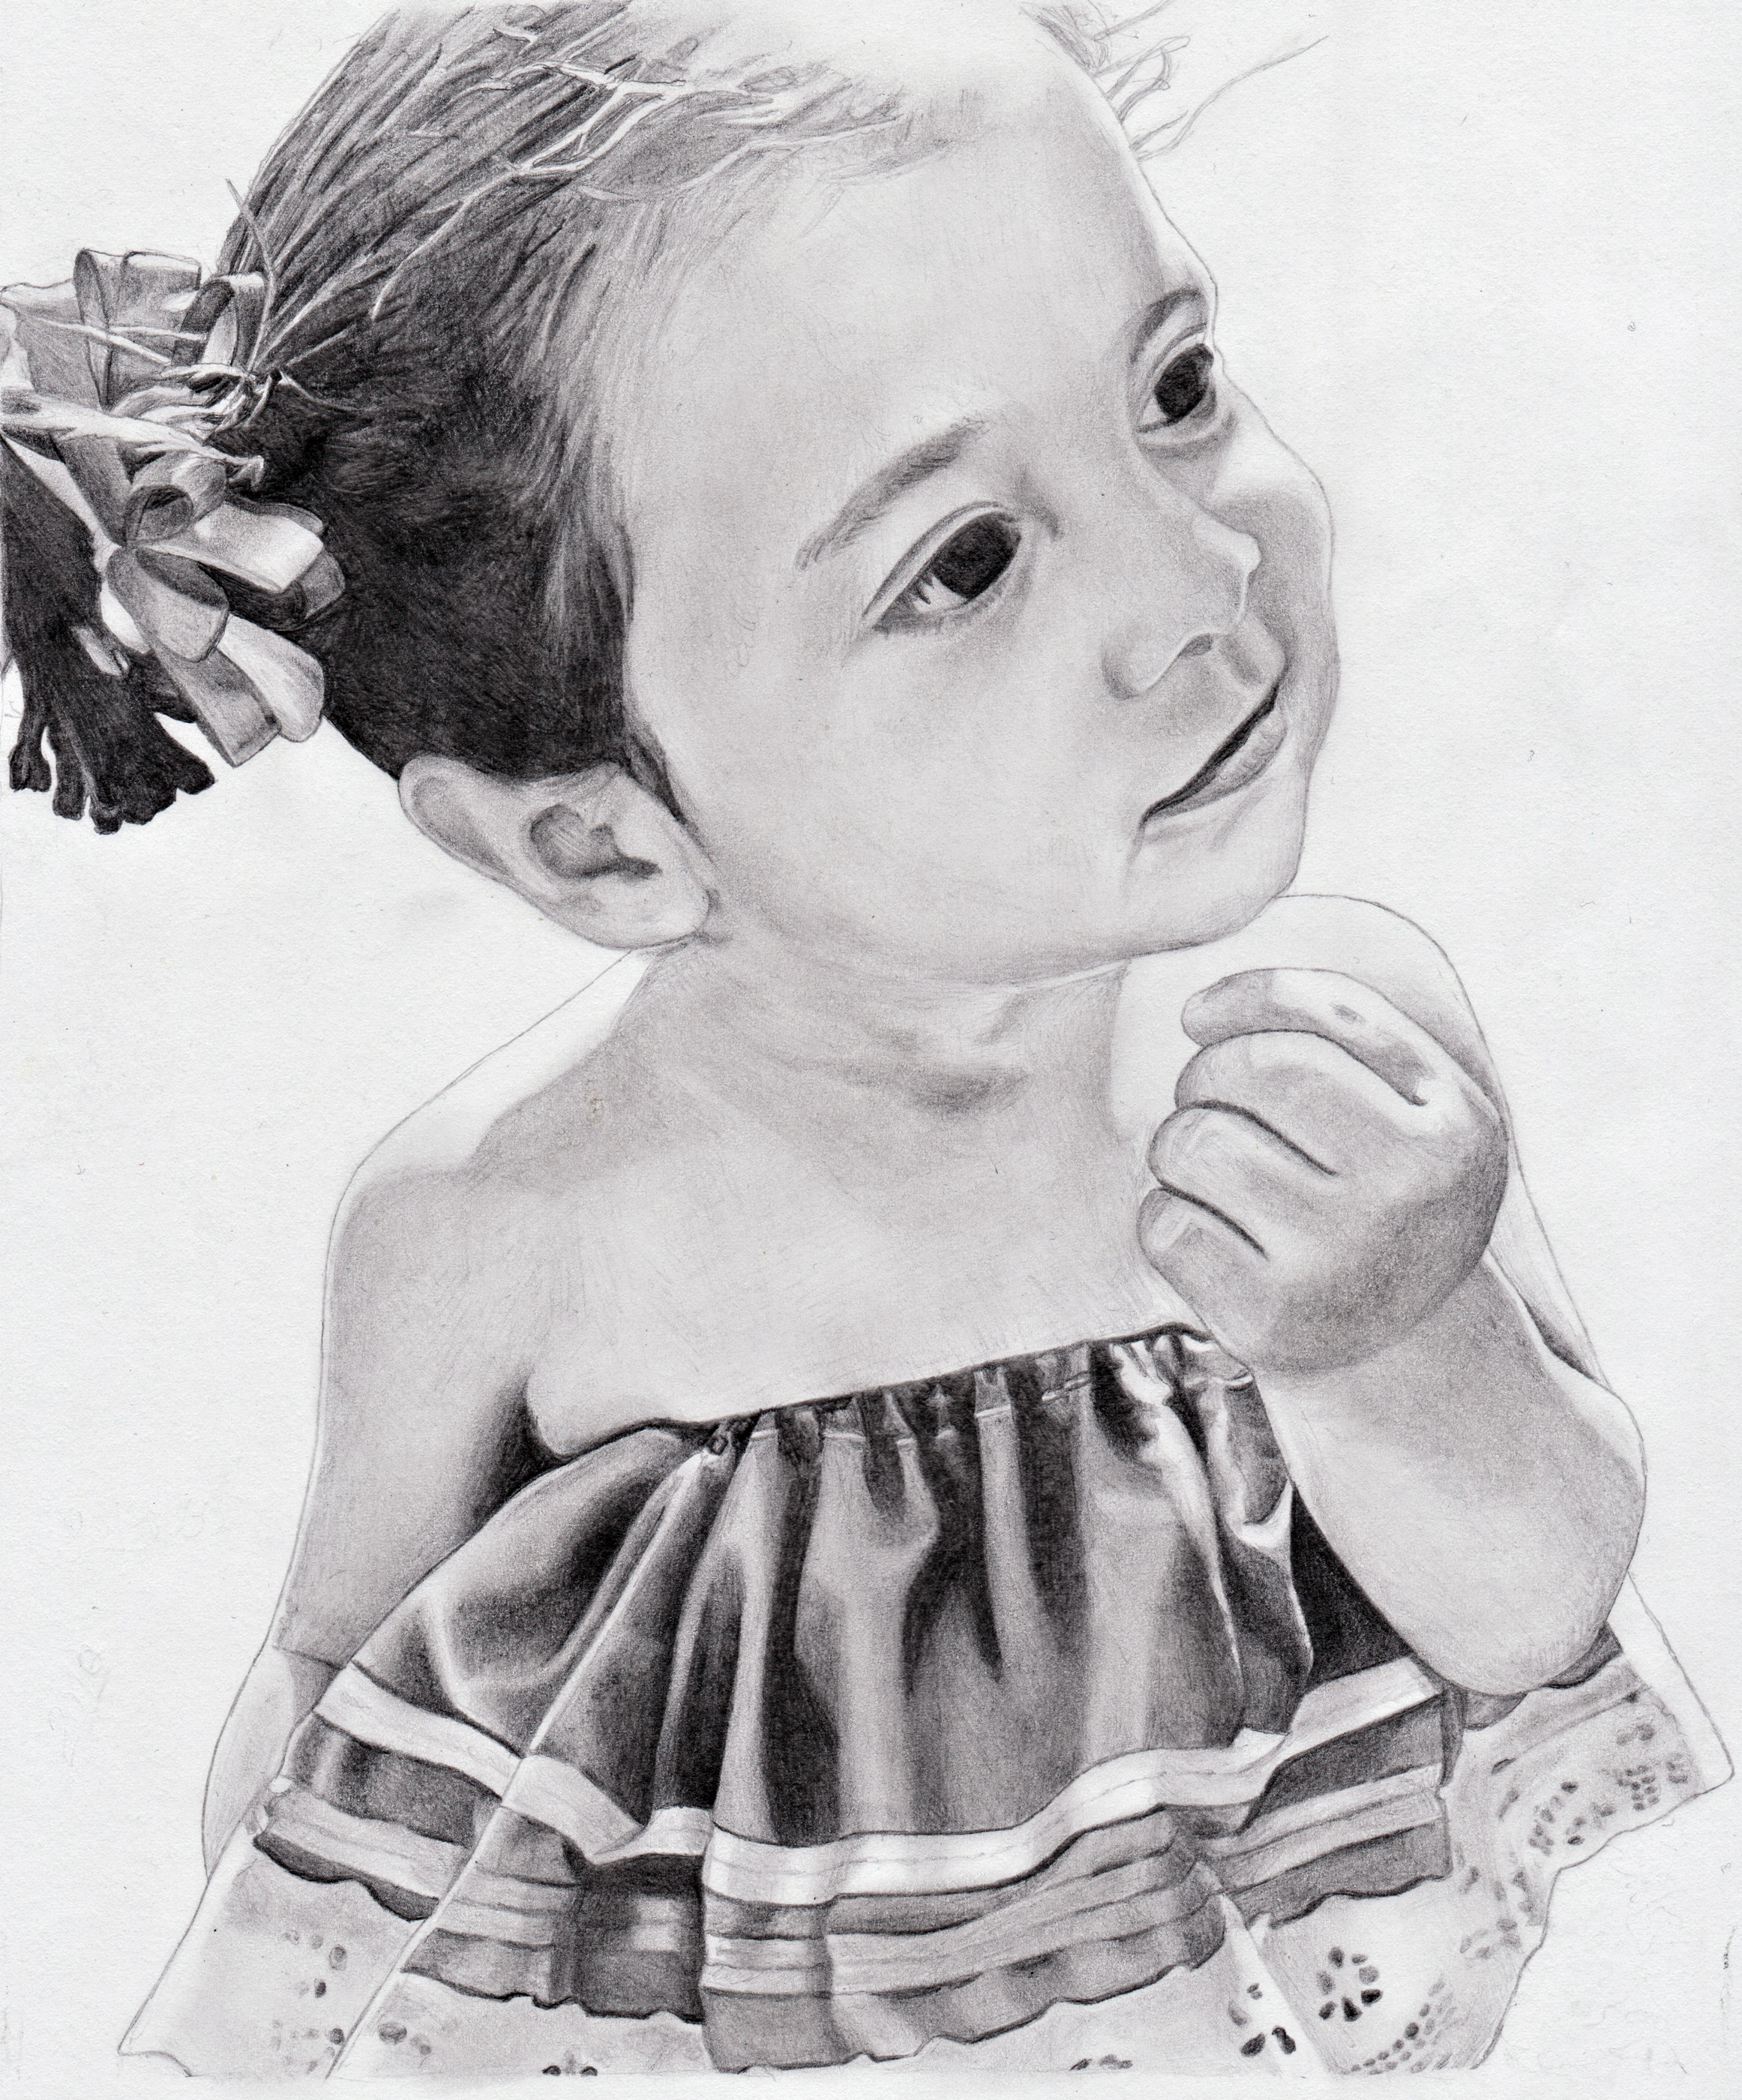 Commission Drawing of a little girl by Wyckedness on DeviantArt